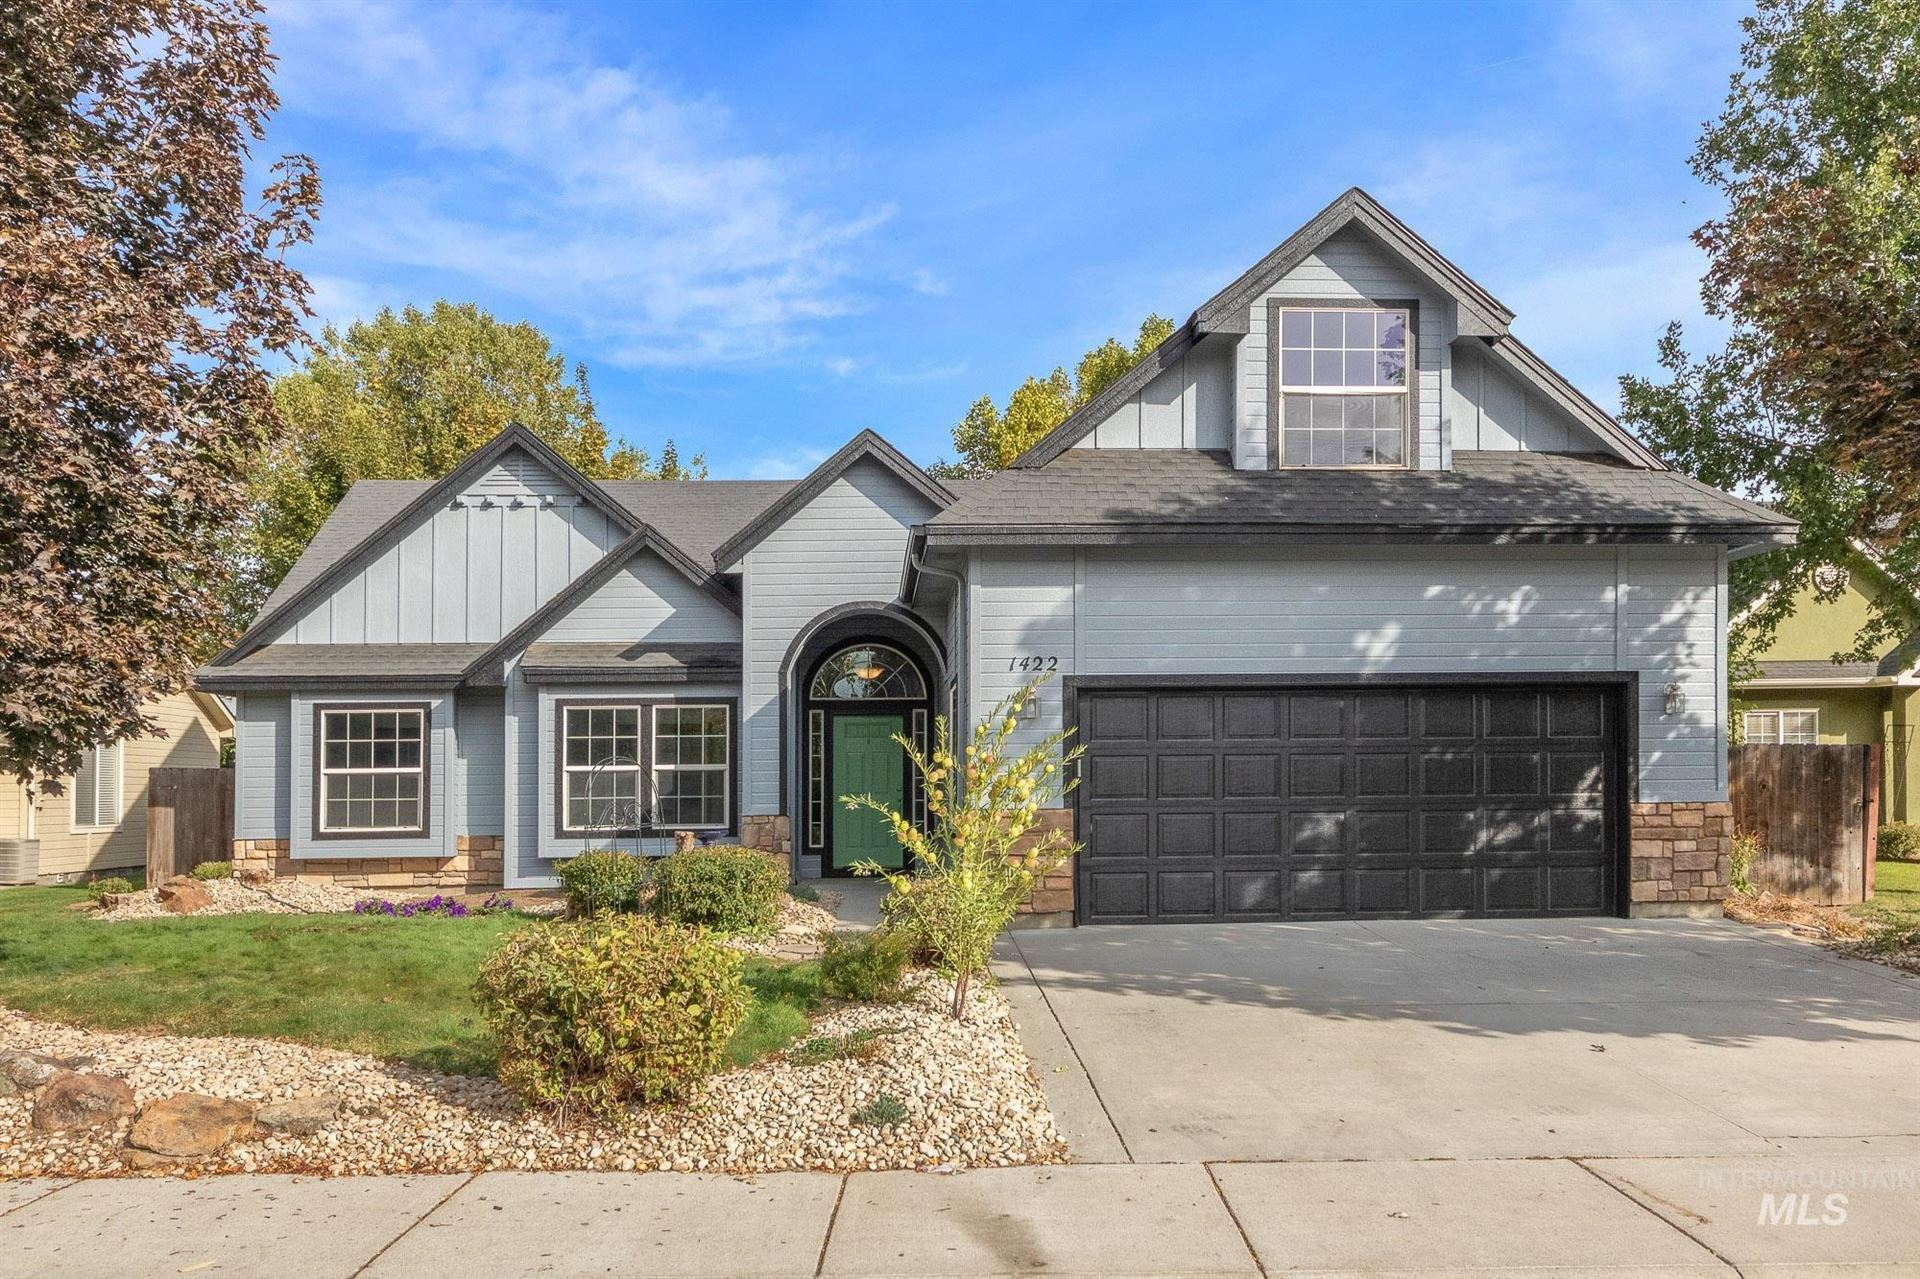 1422 W White Sands Dr, Meridian, ID 83646 - MLS#: 98821792